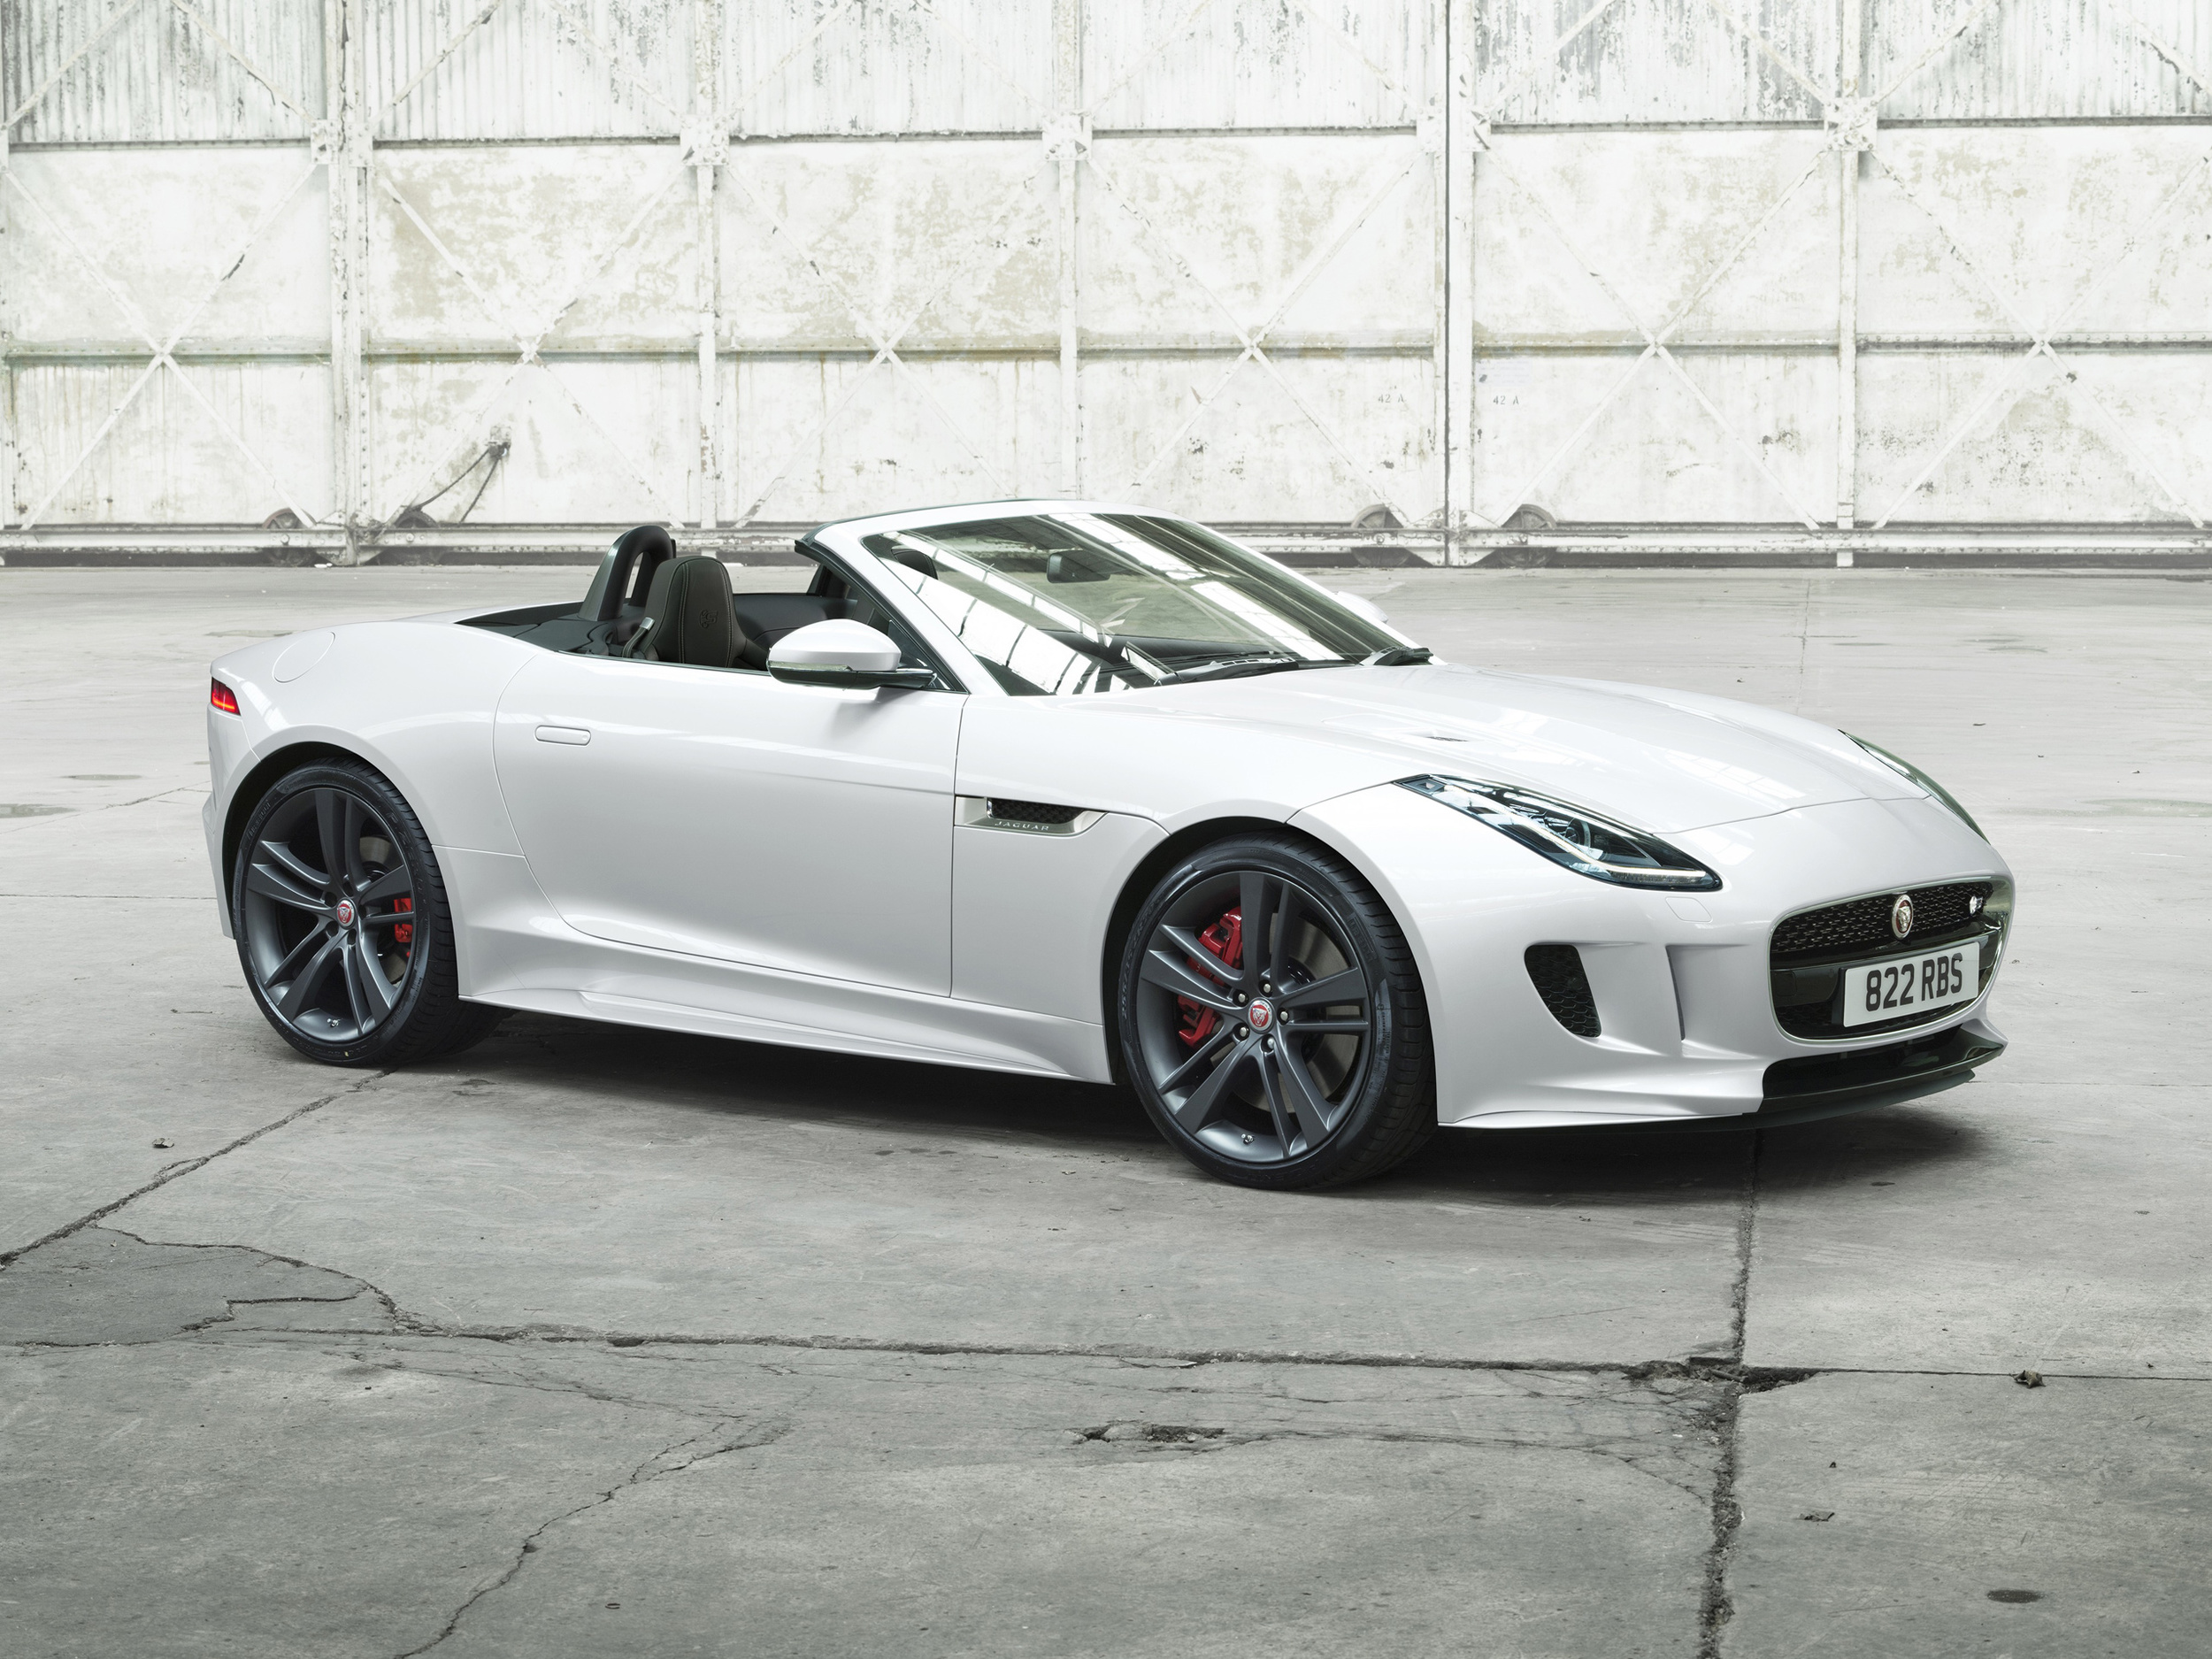 JAGUAR_F-TYPE_BDE_12_Location.jpg